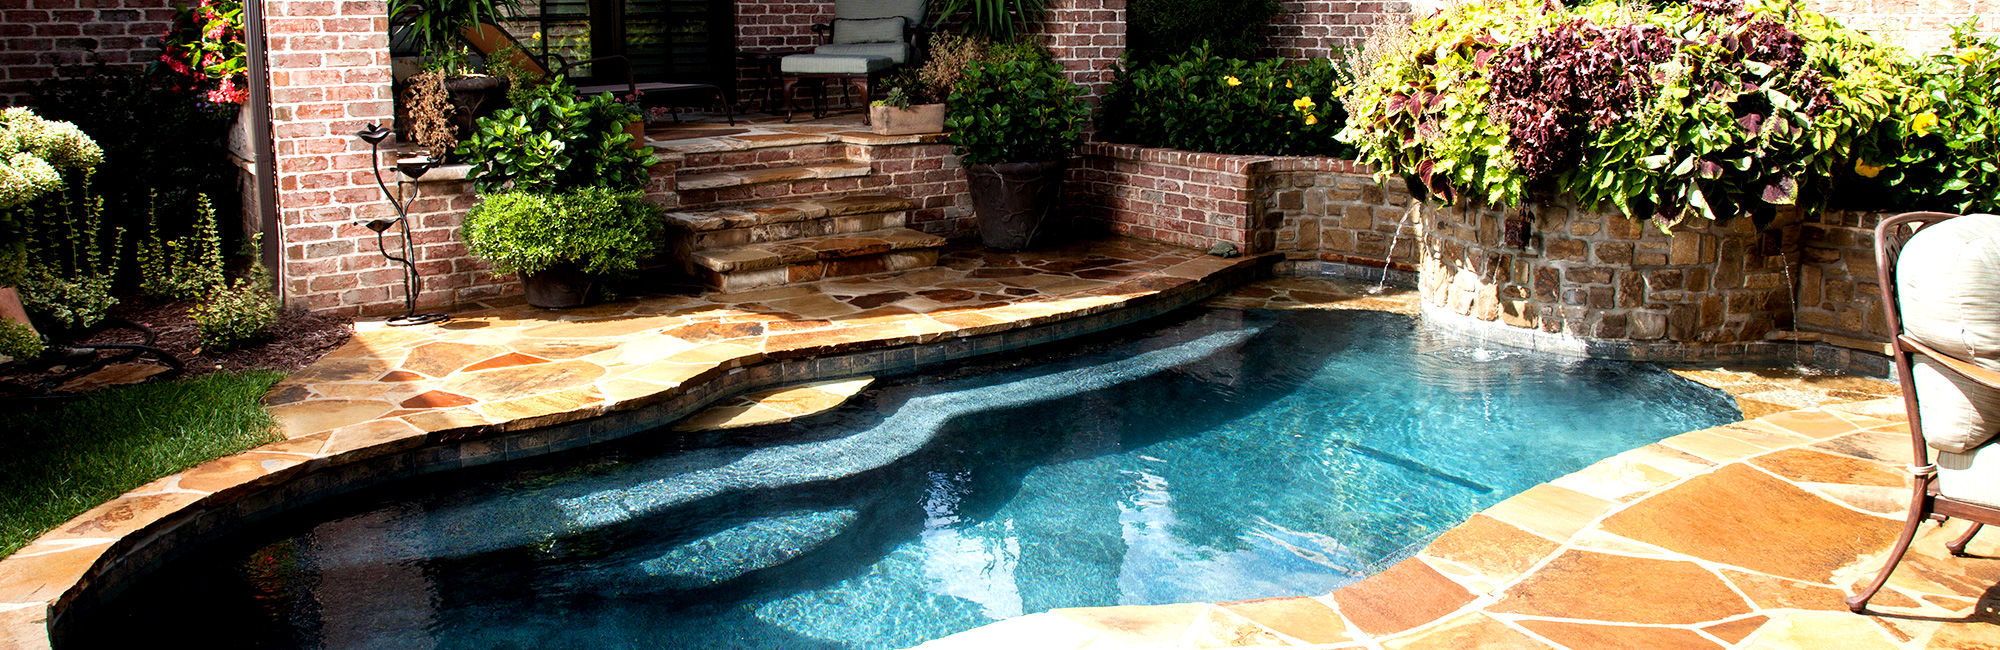 lm-custom-pool-spa-homepage-custom-spa-featured-image